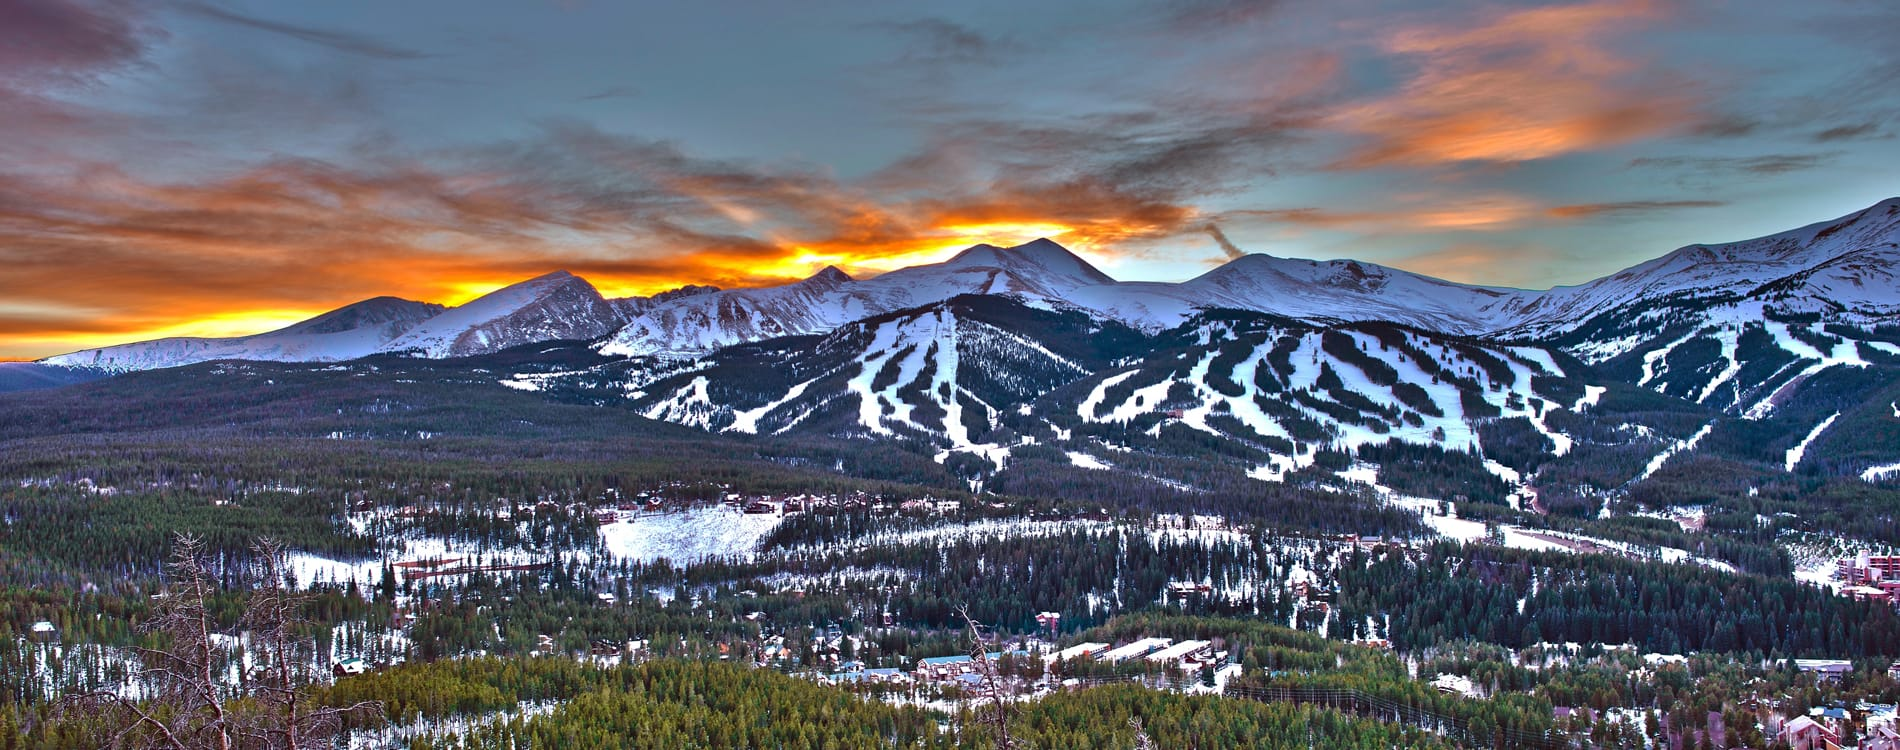 Breckenridge, CO - Sunset over Breckenridge Ski Resort